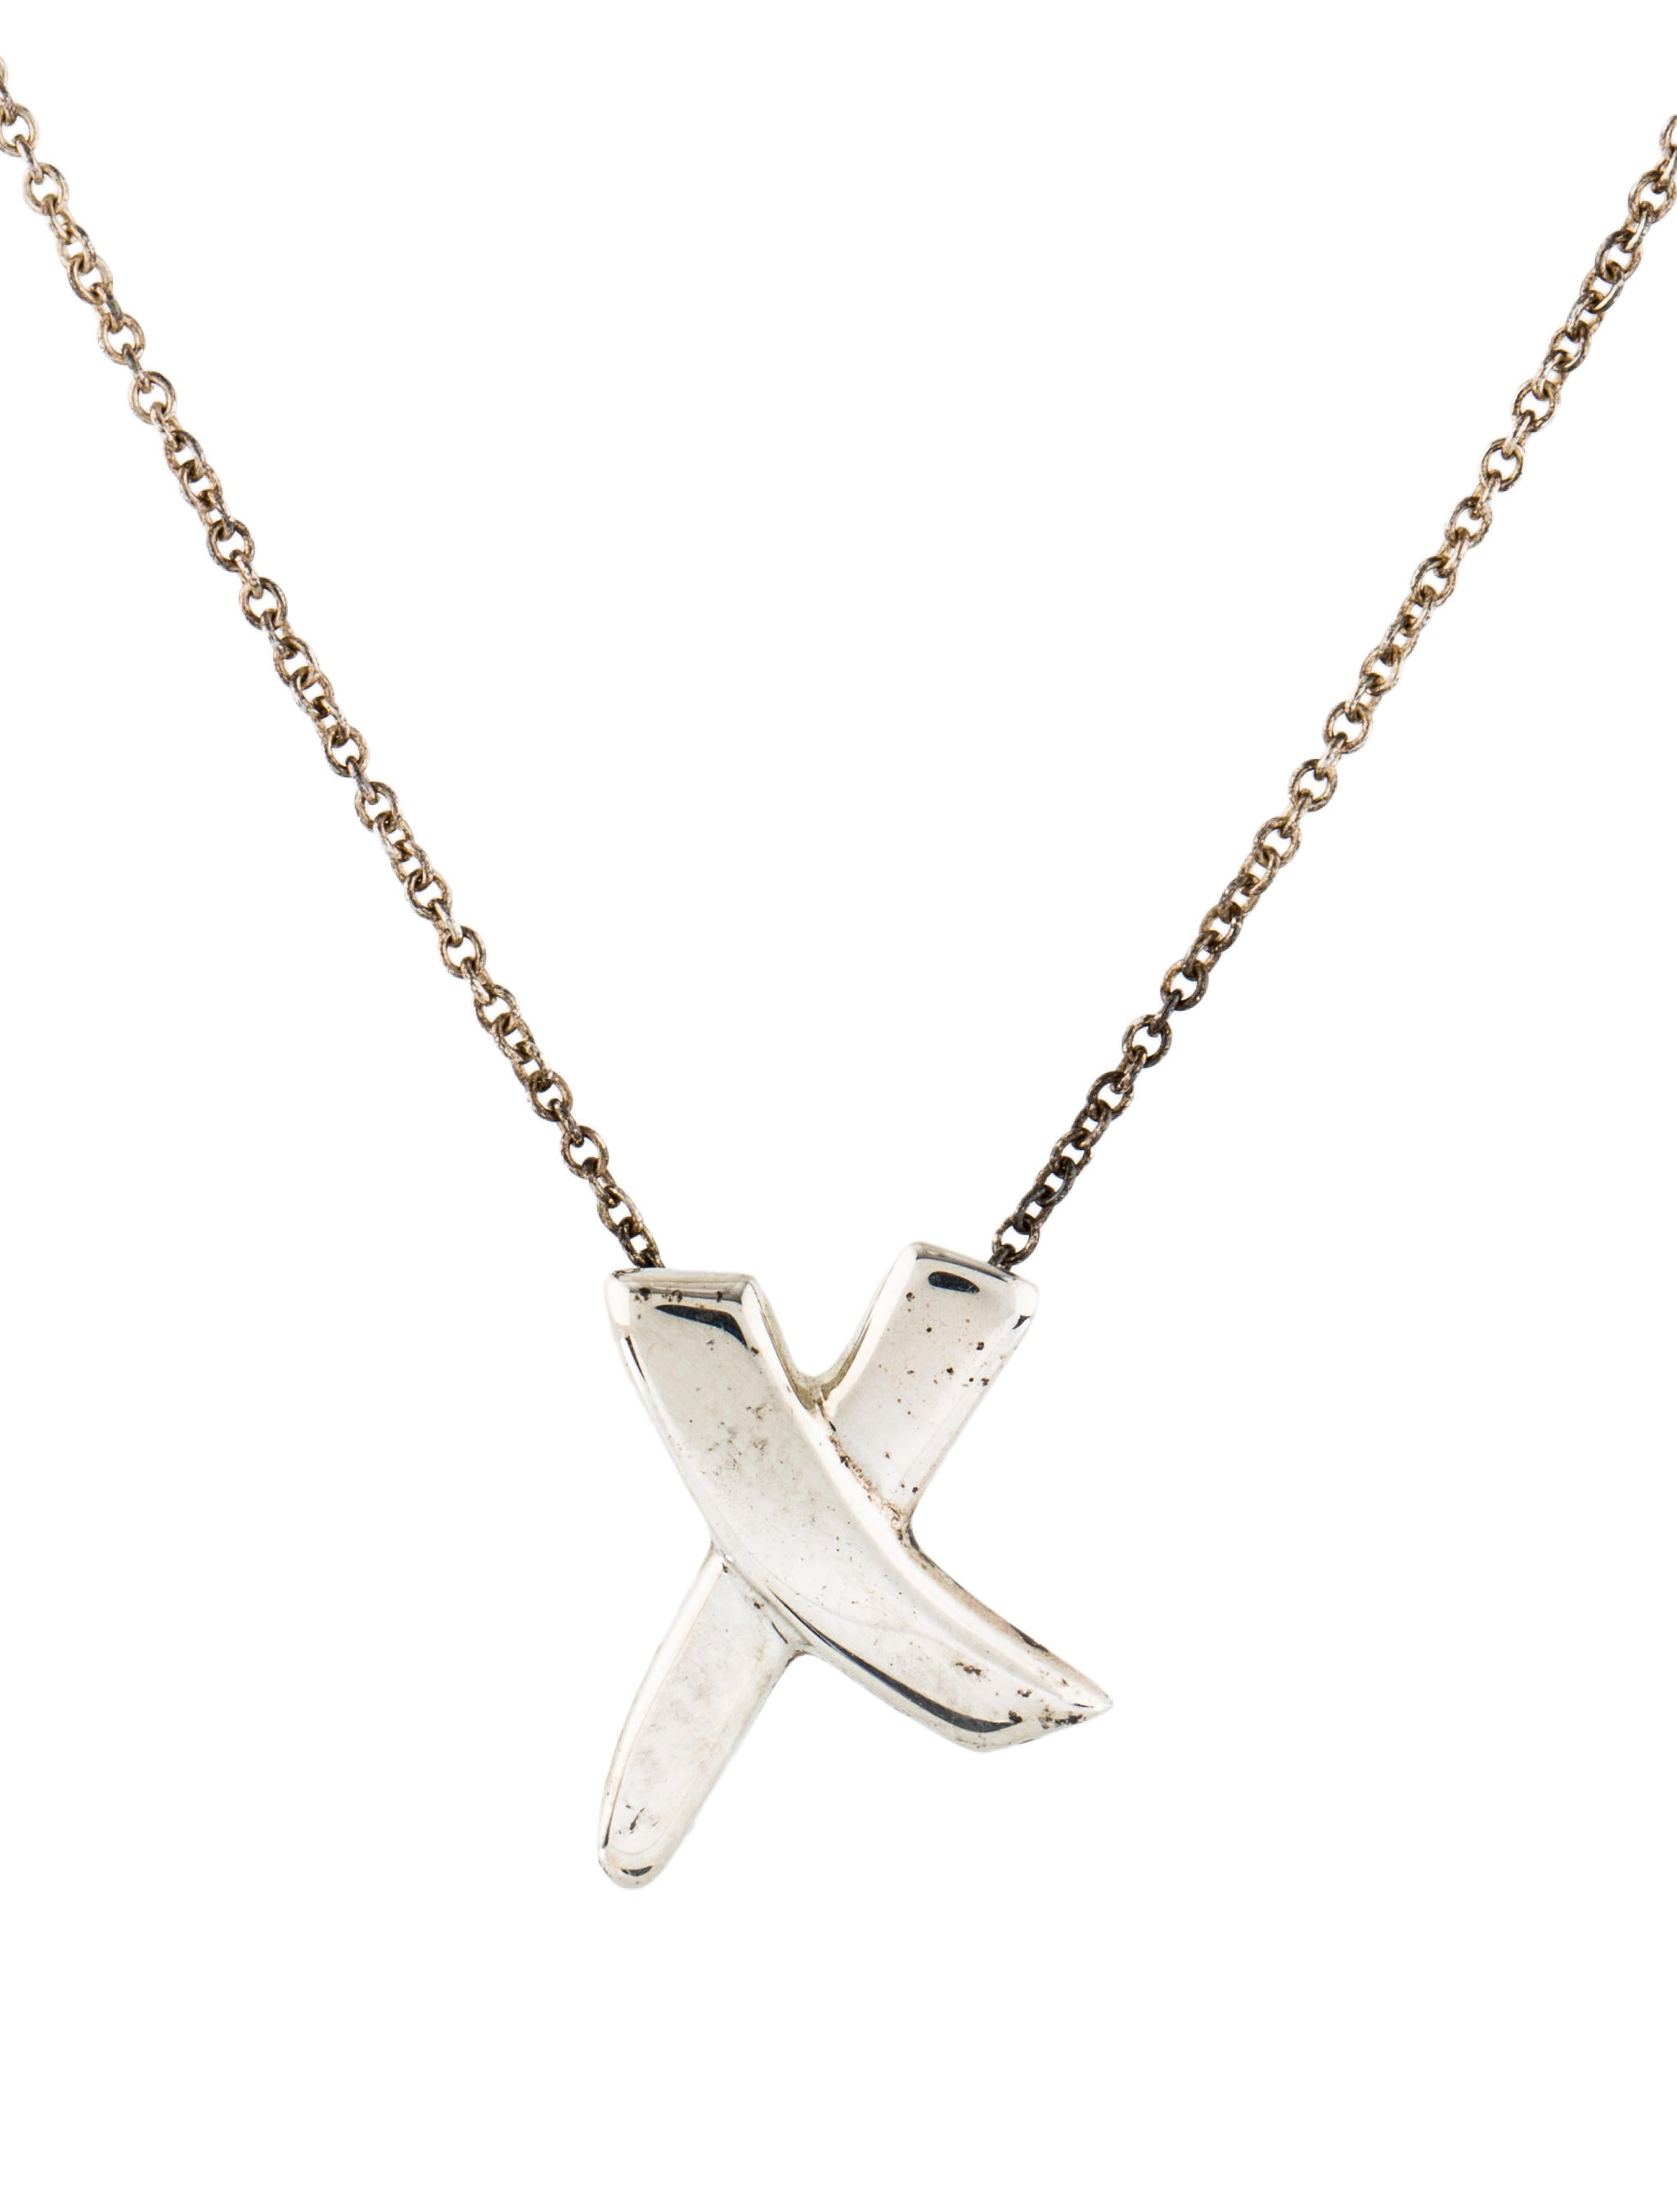 Tiffany co x pendant necklace necklaces tif76366 the realreal x pendant necklace aloadofball Gallery